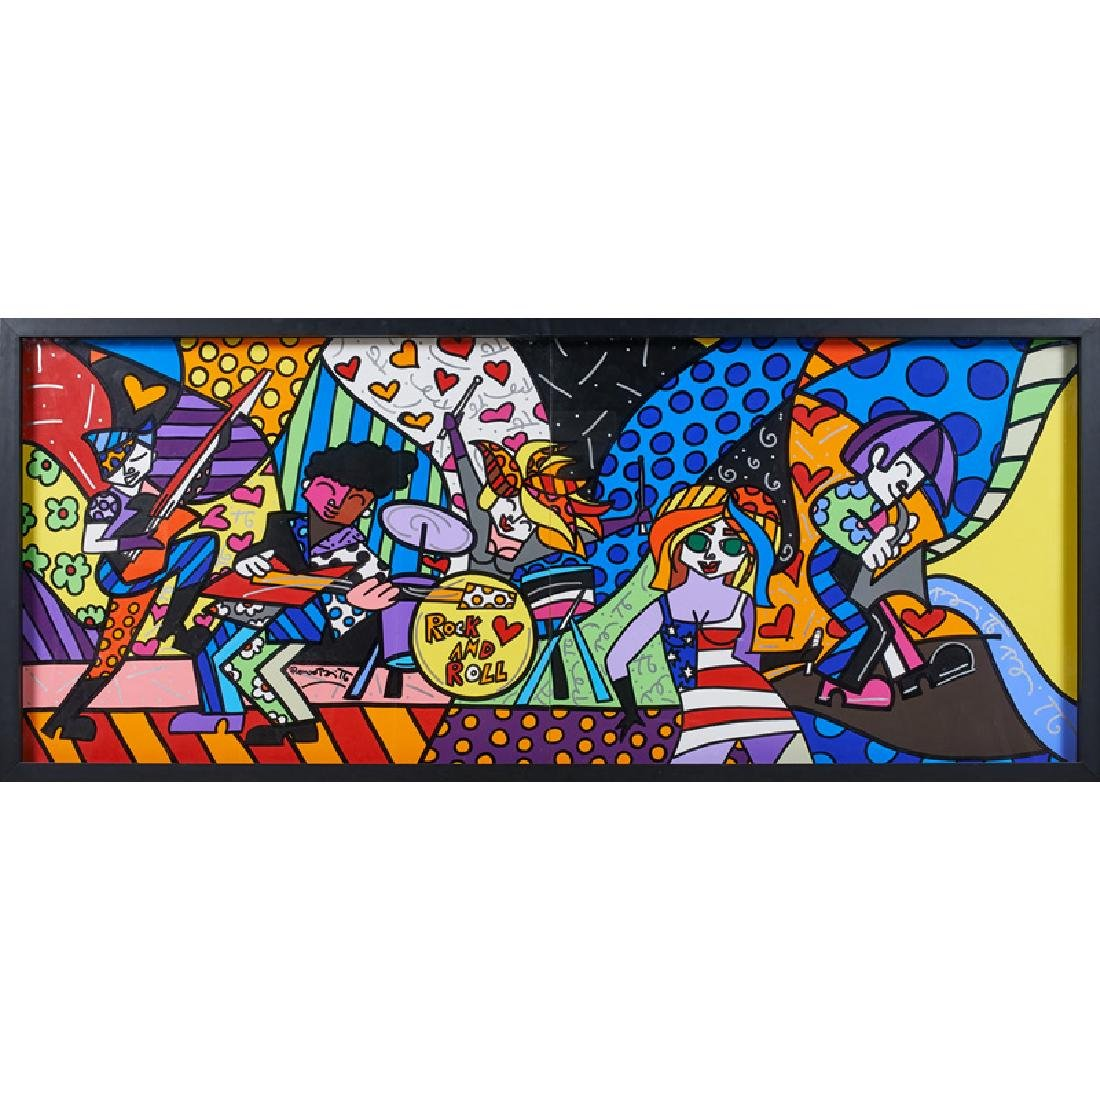 ROMERO BRITTO Large untitled painting